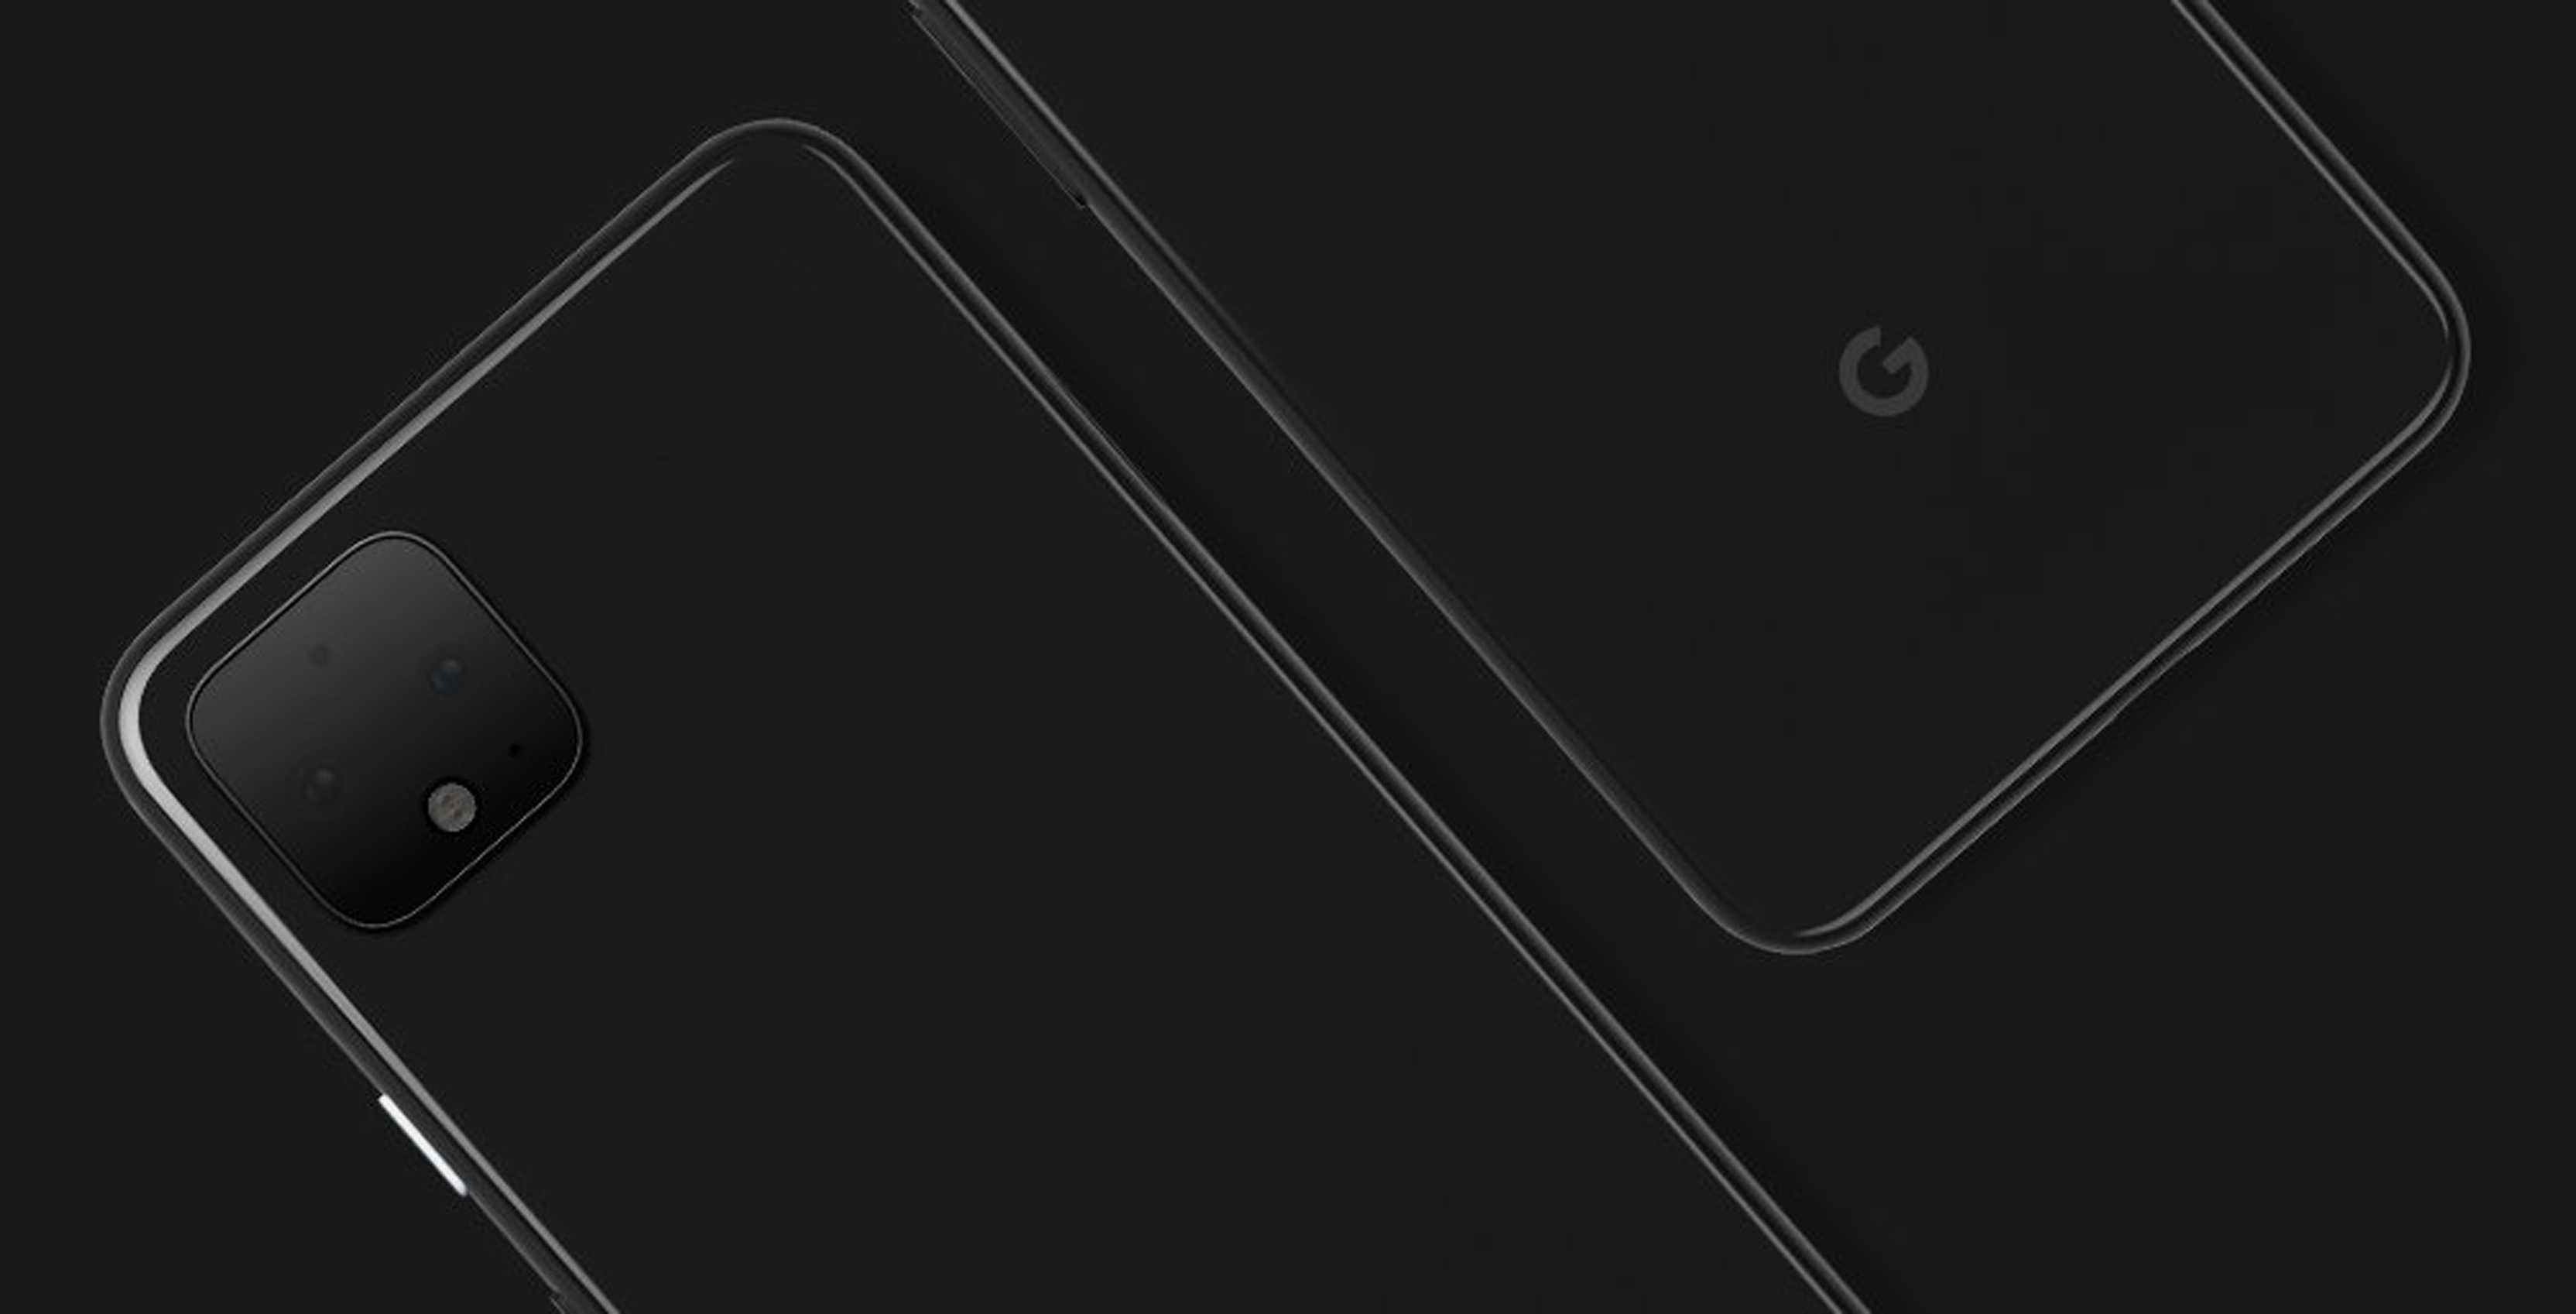 Leaker shares official render of the 'Clearly White' Pixel 4